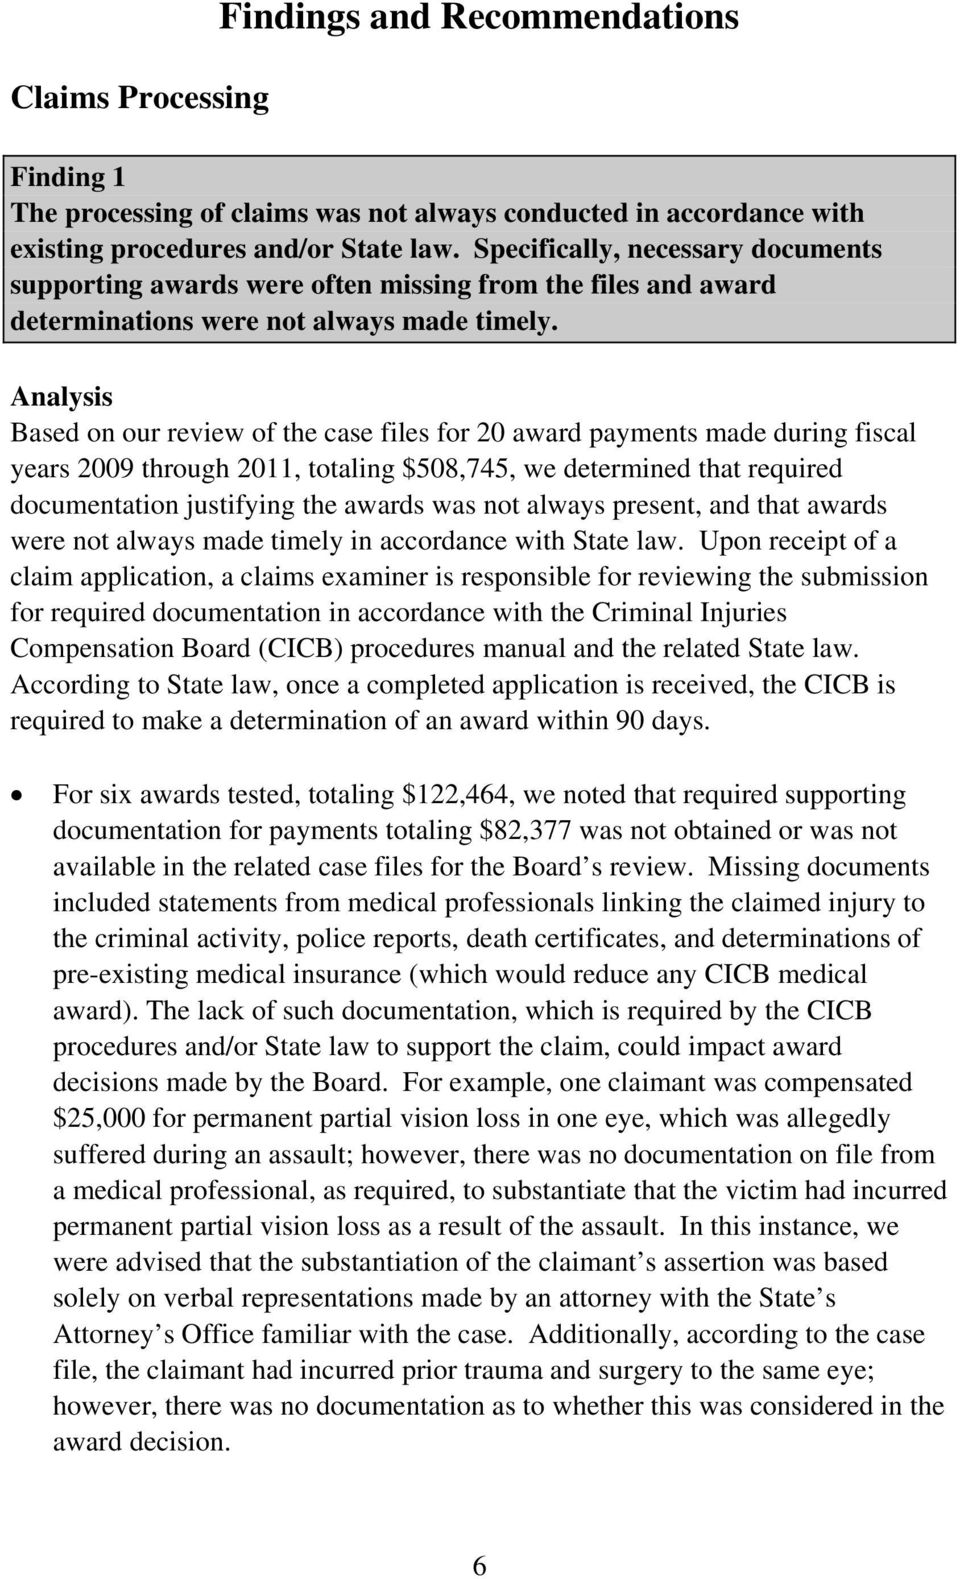 Analysis Based on our review of the case files for 20 award payments made during fiscal years 2009 through 2011, totaling $508,745, we determined that required documentation justifying the awards was